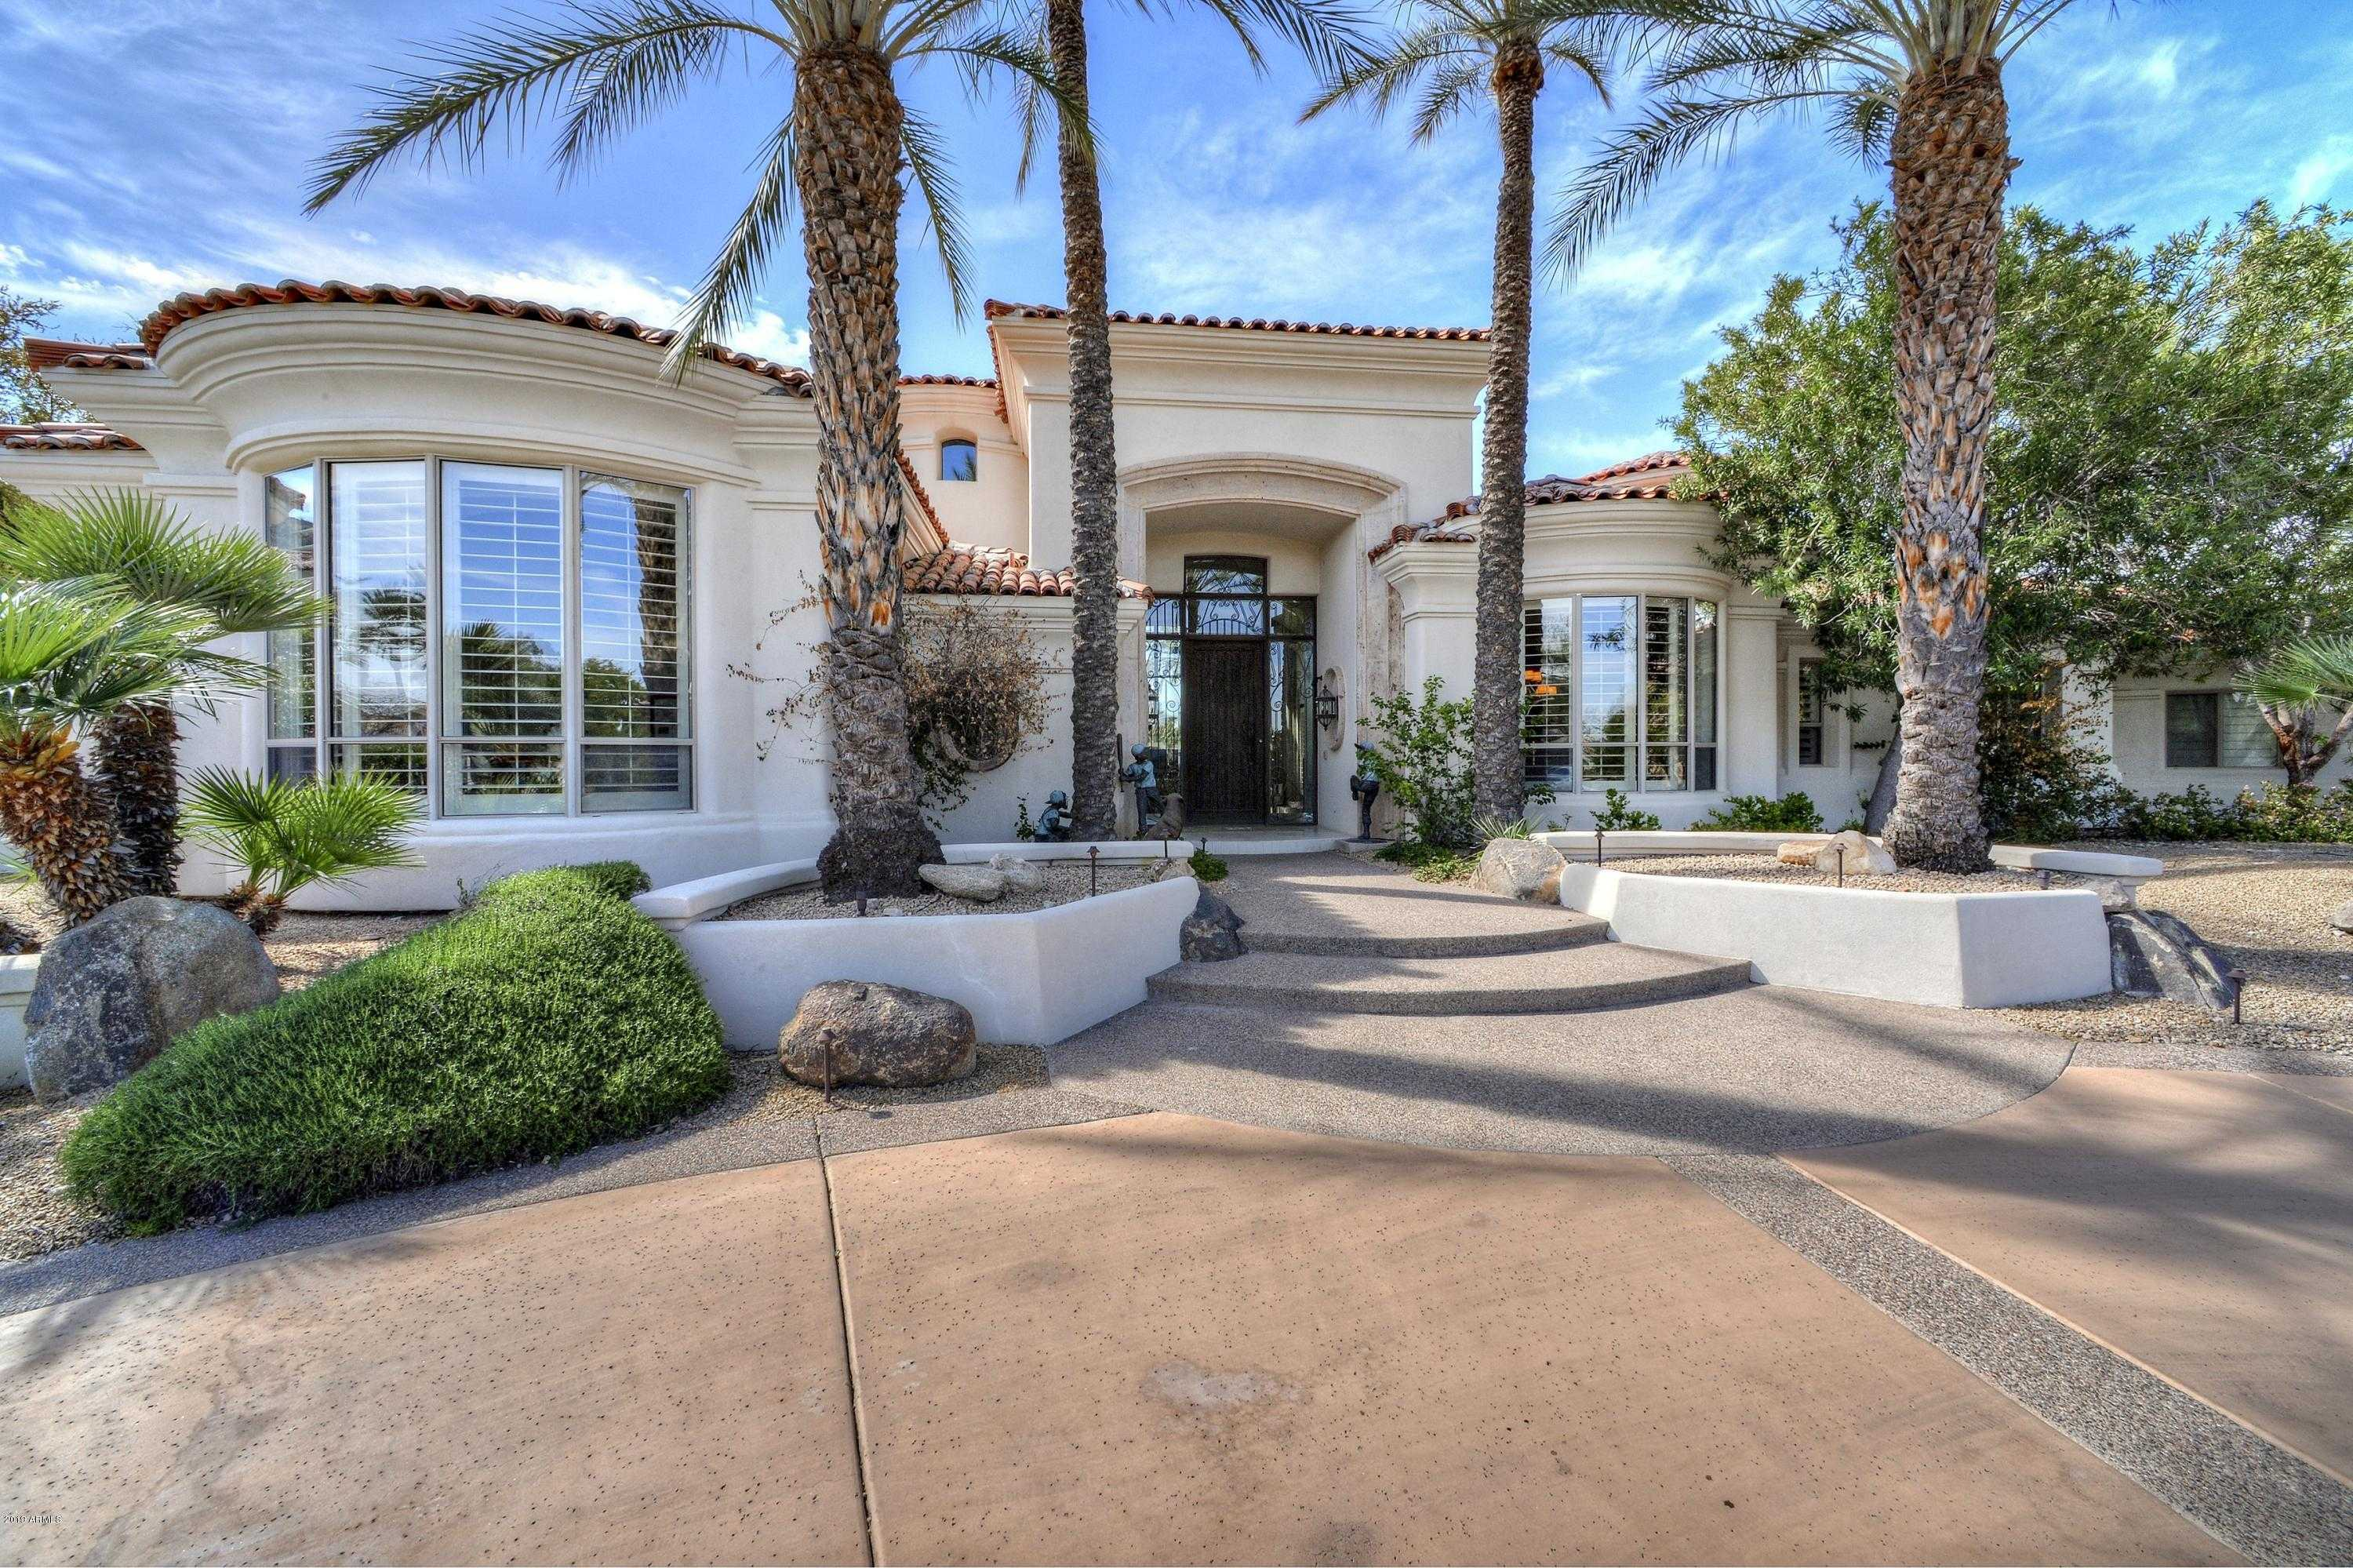 $2,750,000 - 5Br/7Ba - Home for Sale in Canyon Horizons, Paradise Valley